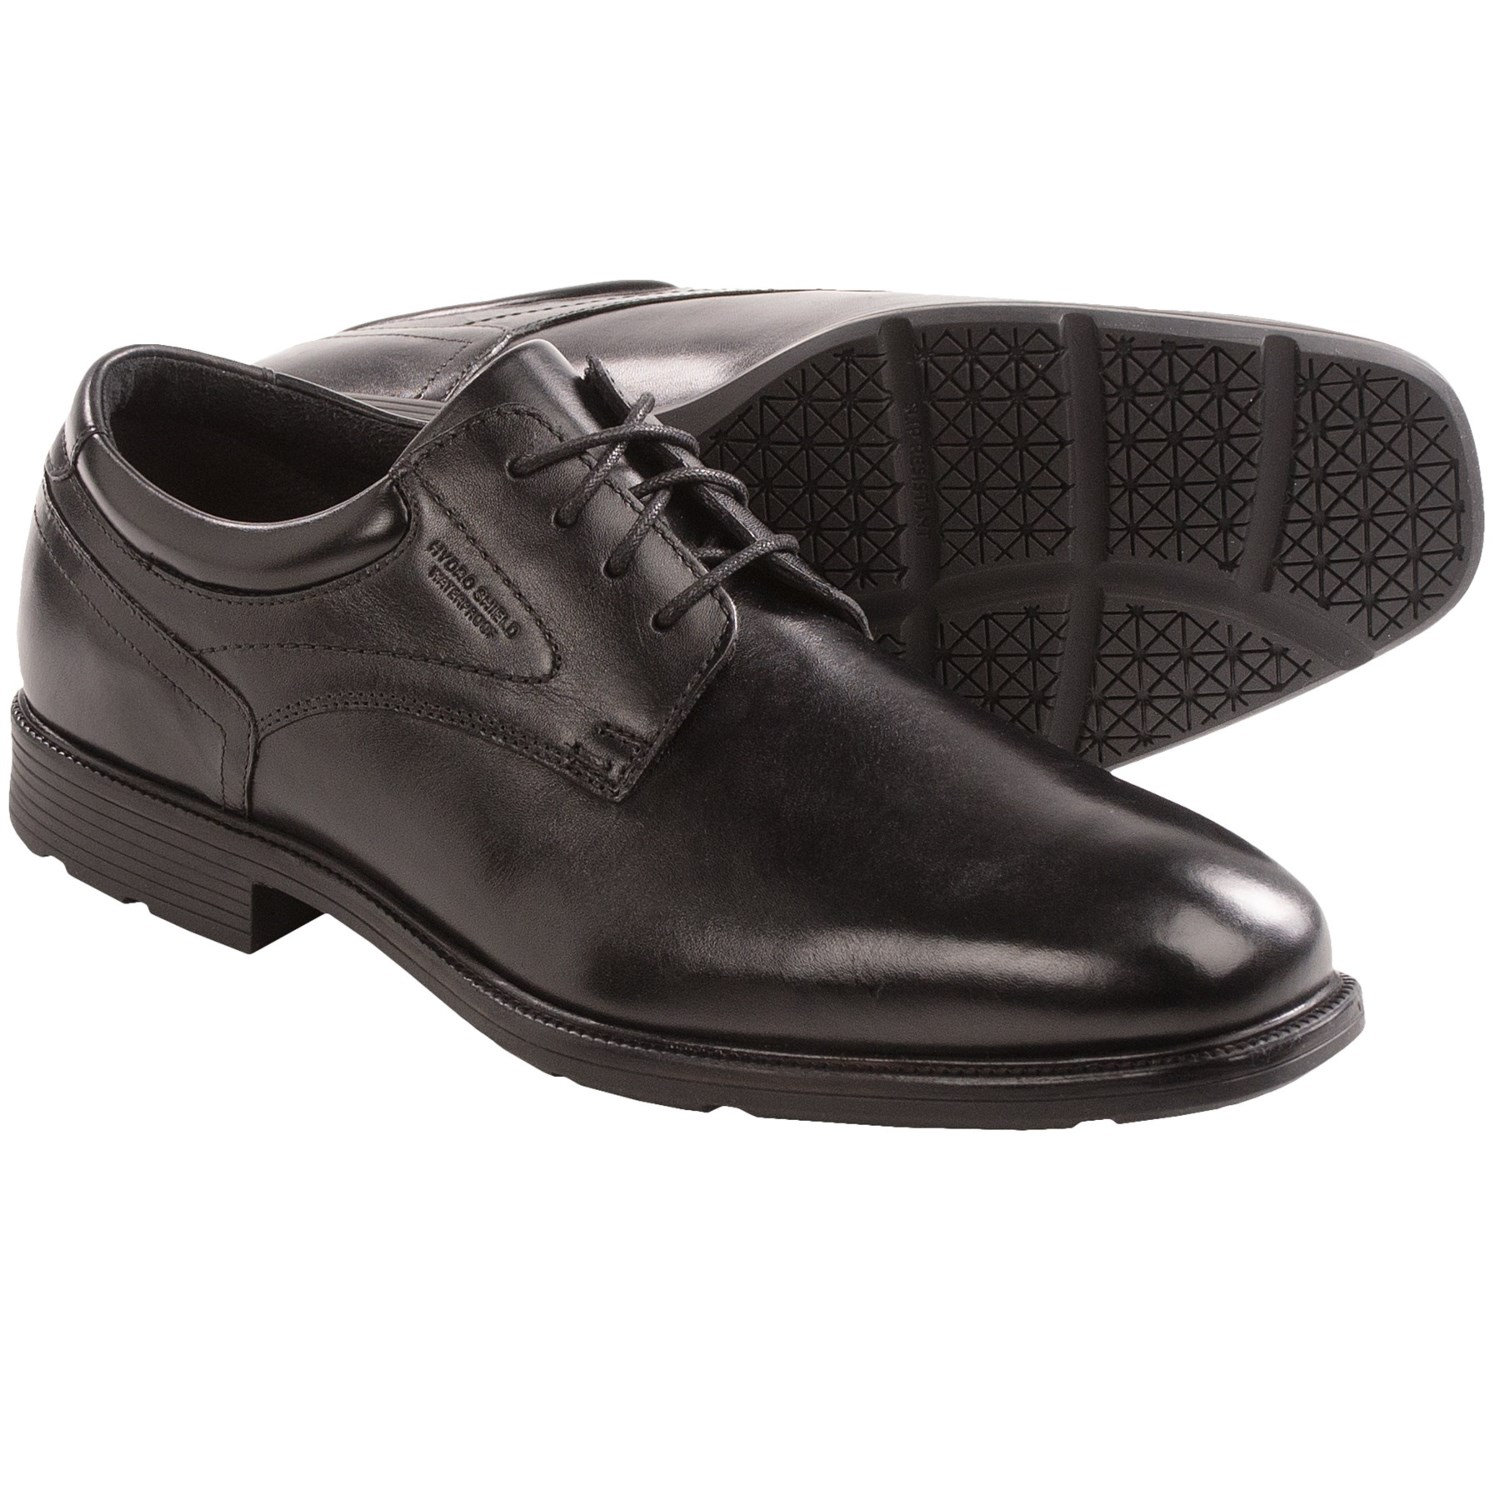 Permalink to Rockport Shoes For Men